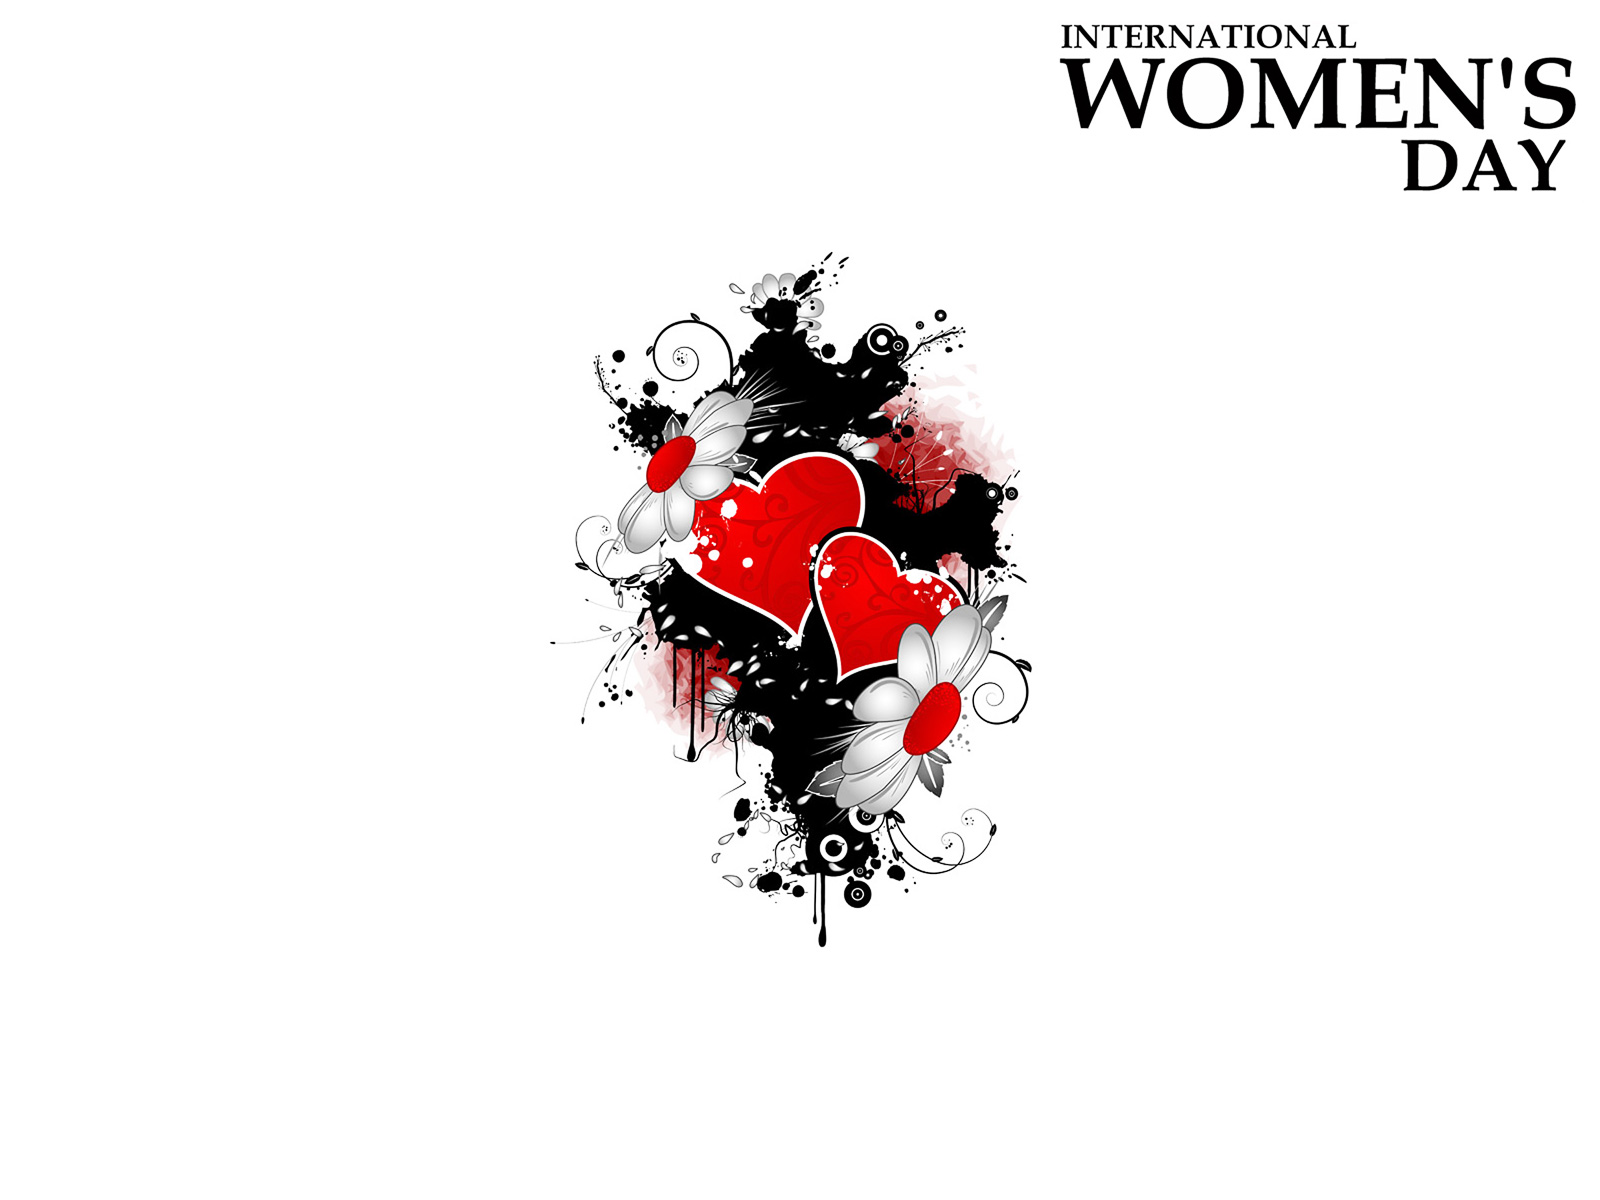 International Women's Day 2012 wallpapers